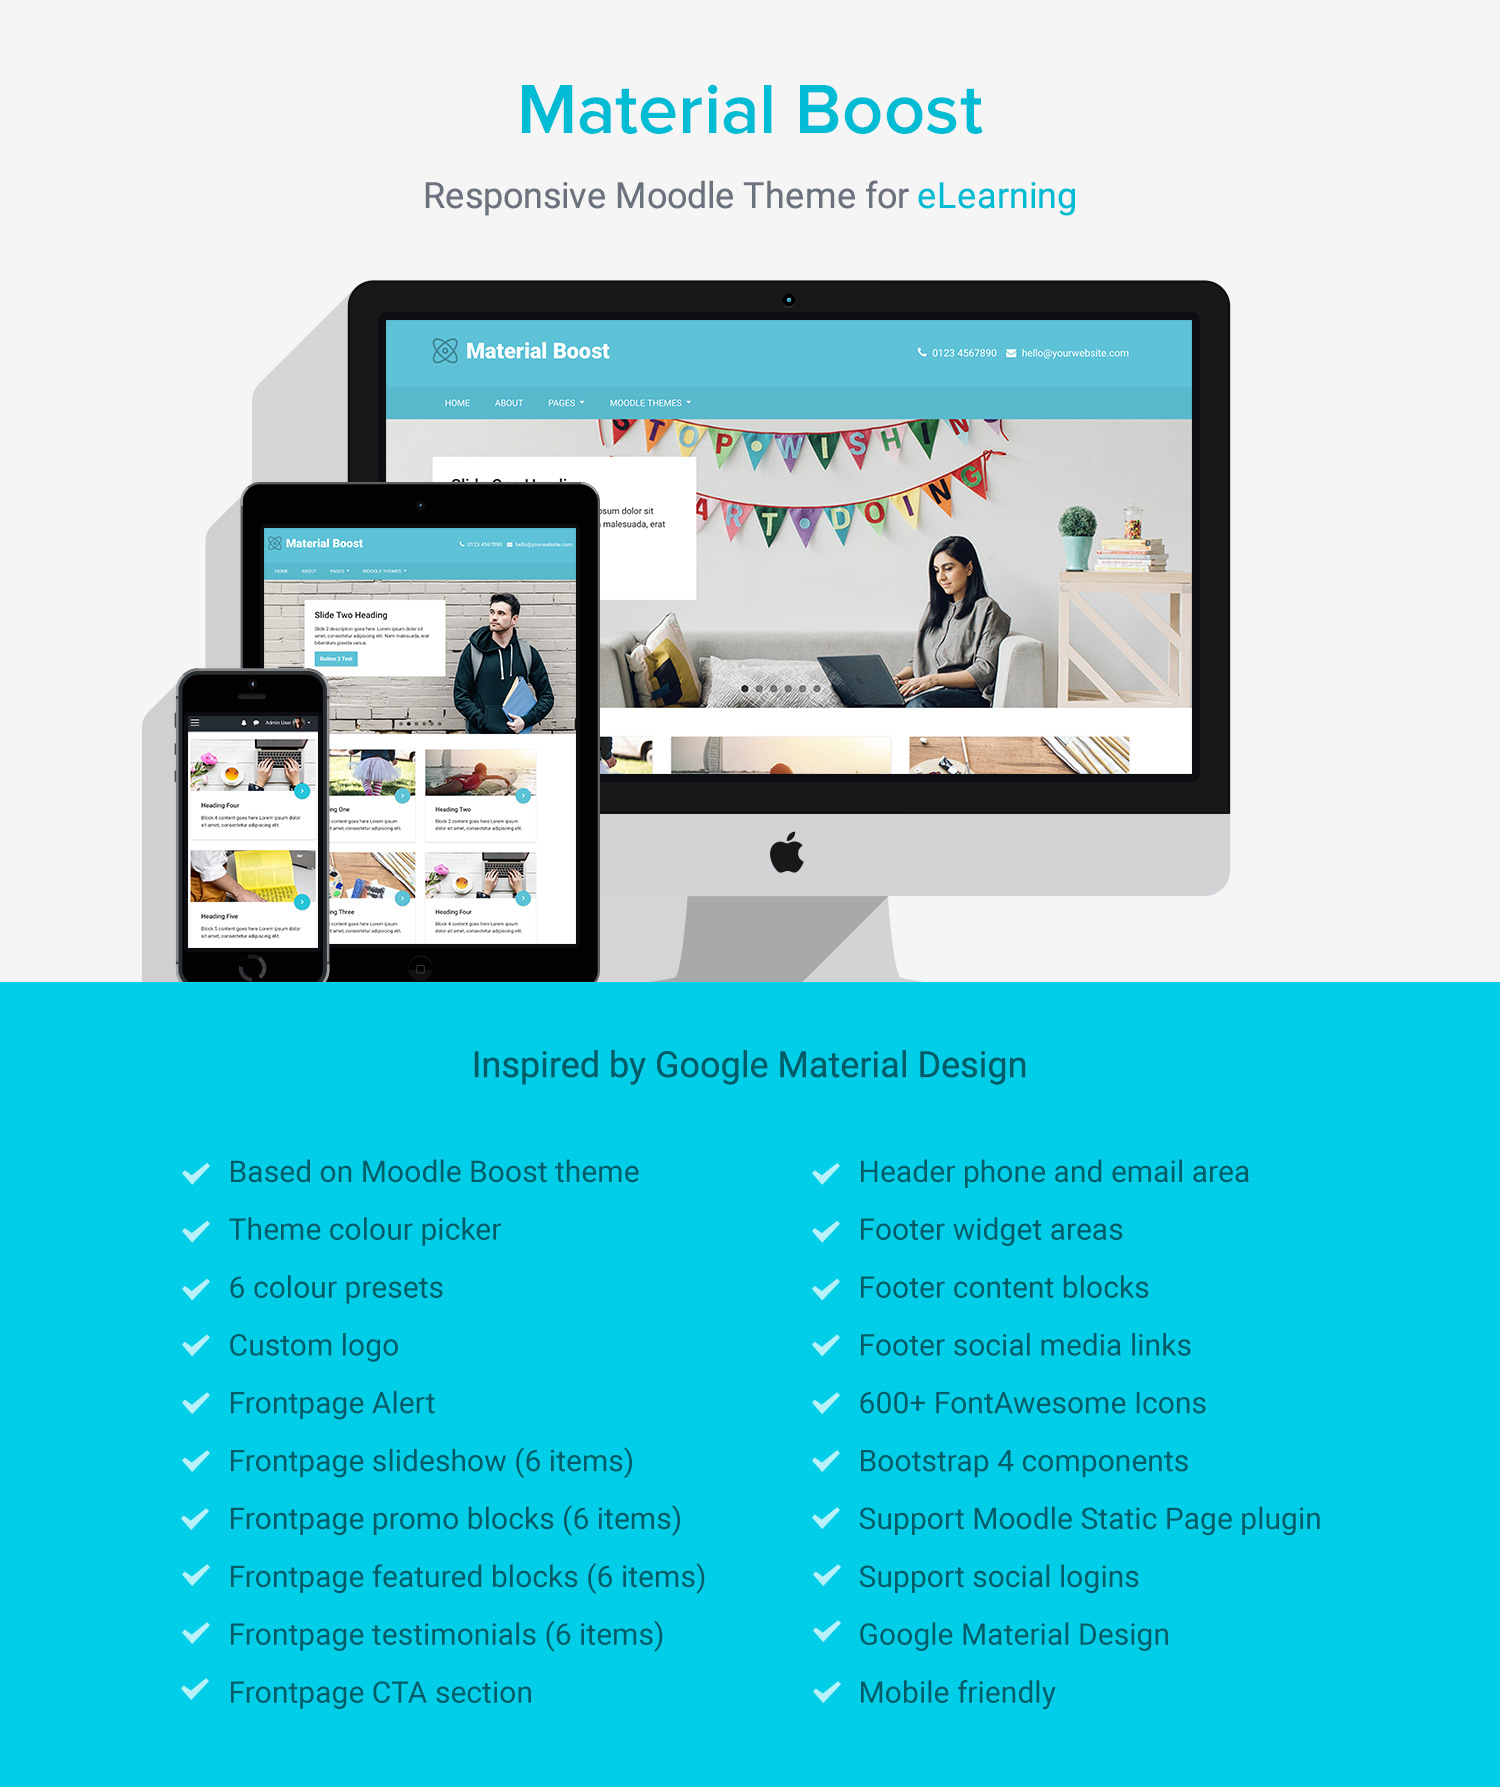 Responsive-Moodle-Theme-Material-Boost-Promo